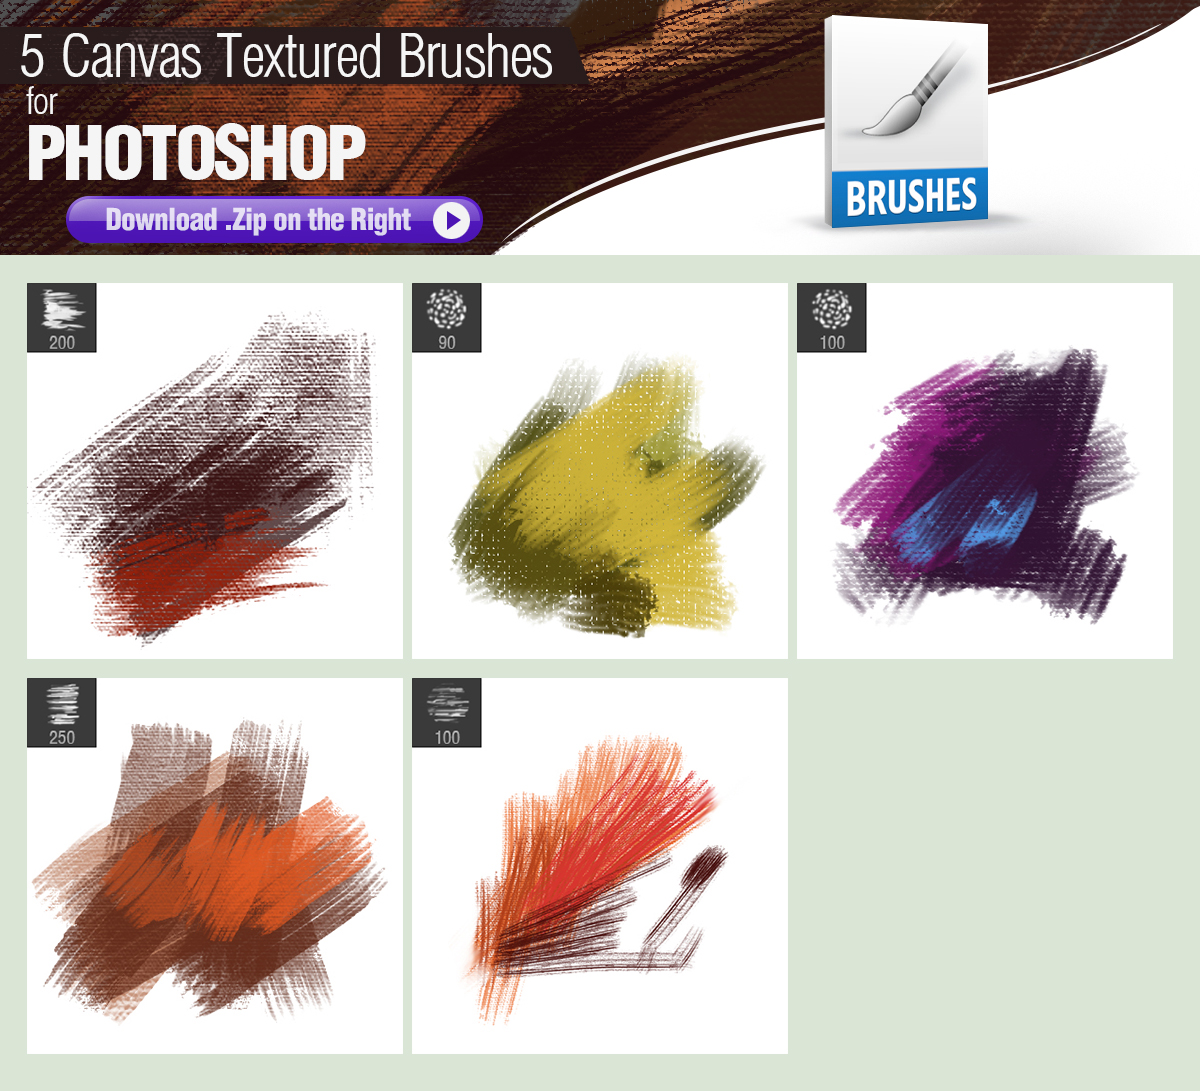 5 Canvas Textured Photoshop Brushes By Pixelstains On